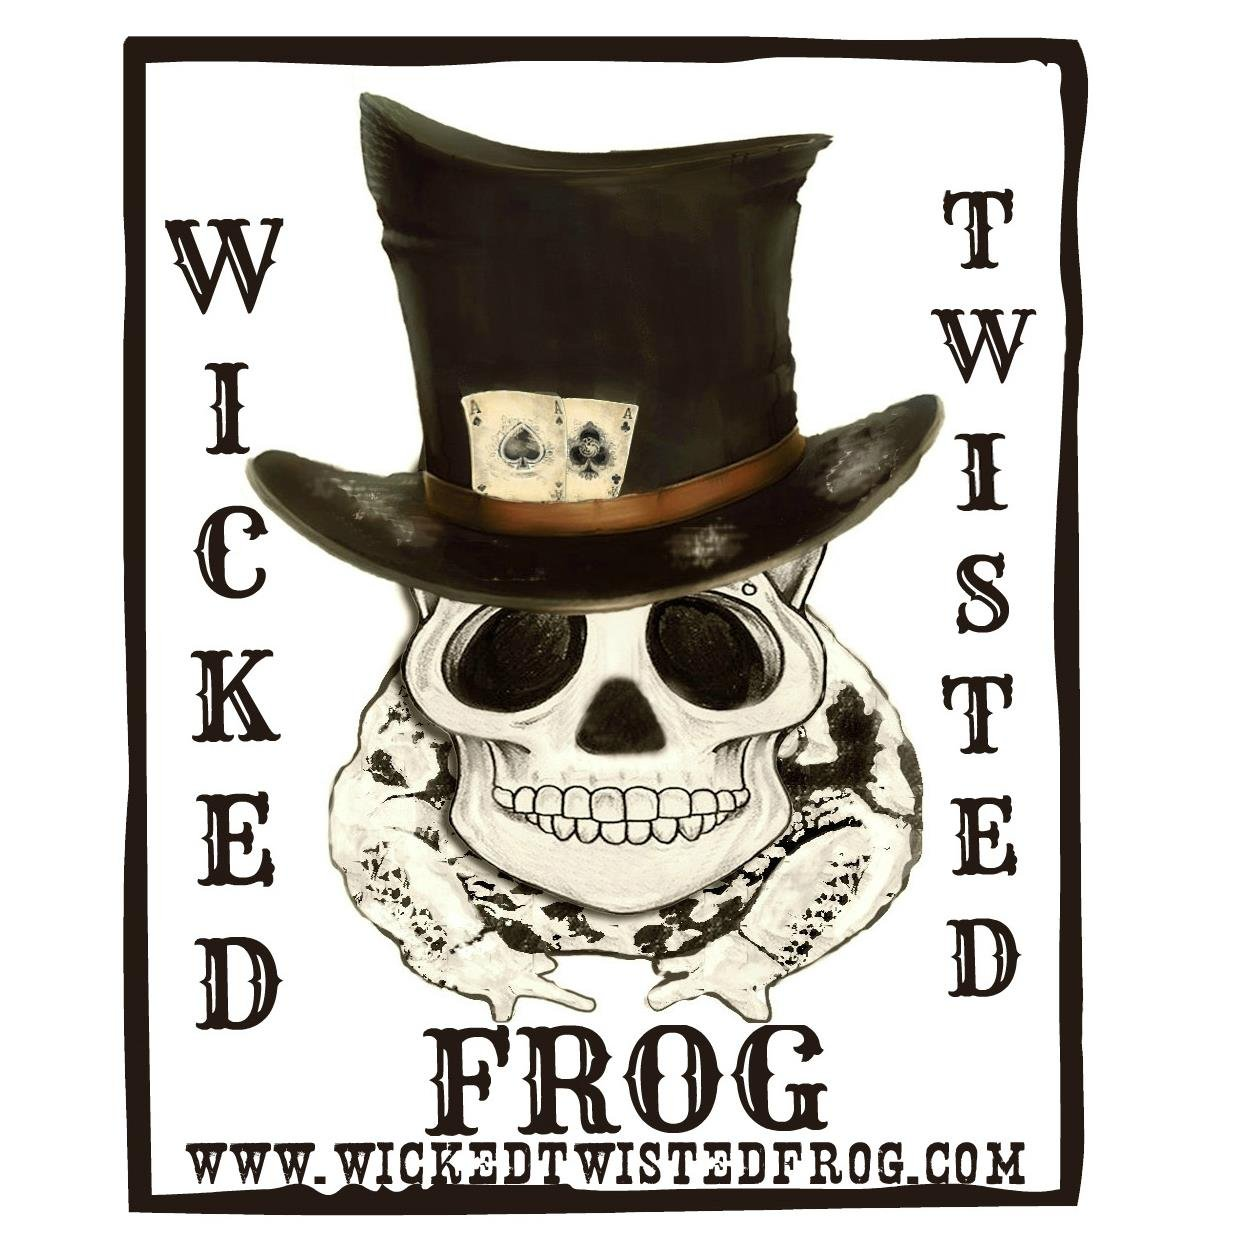 Wicked Twisted Frog on Twitter: